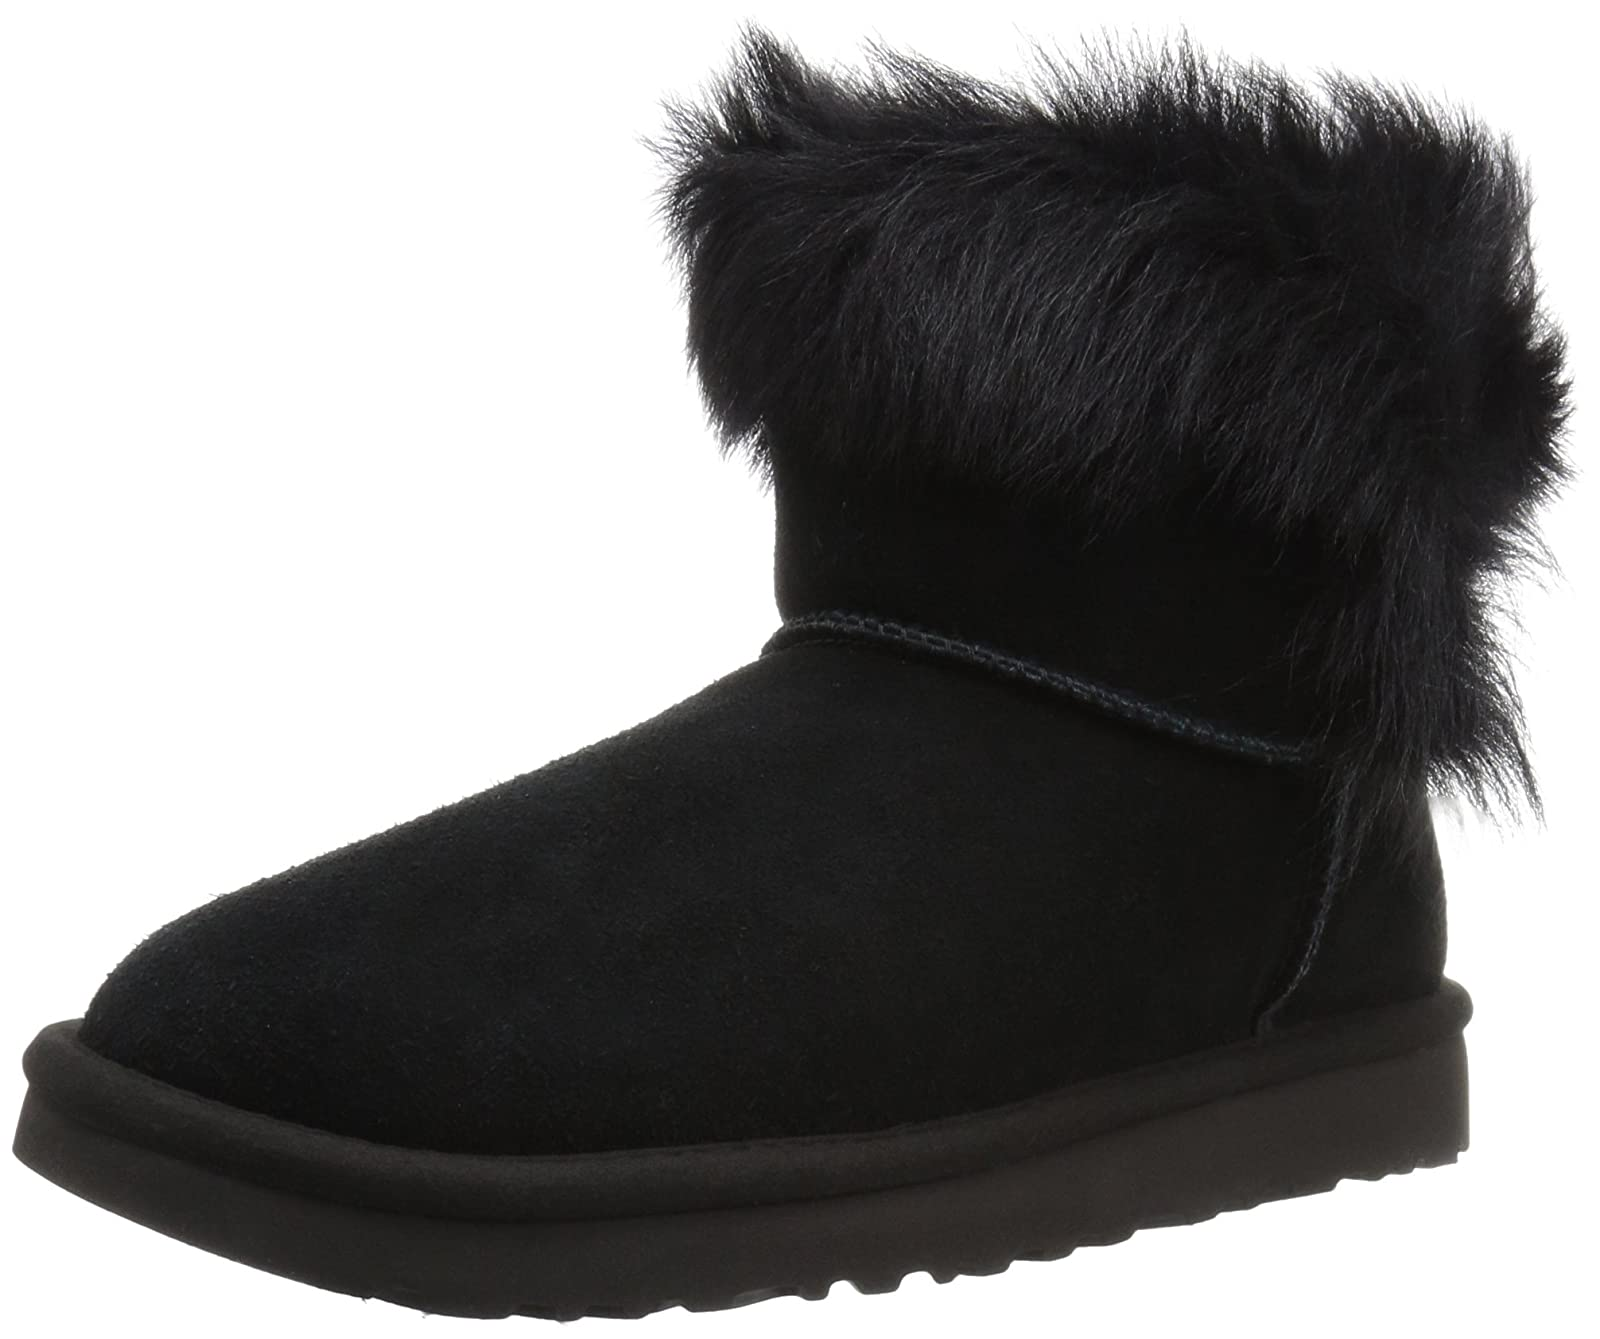 UGG Women's Milla Boot 9T US Toddler - 1